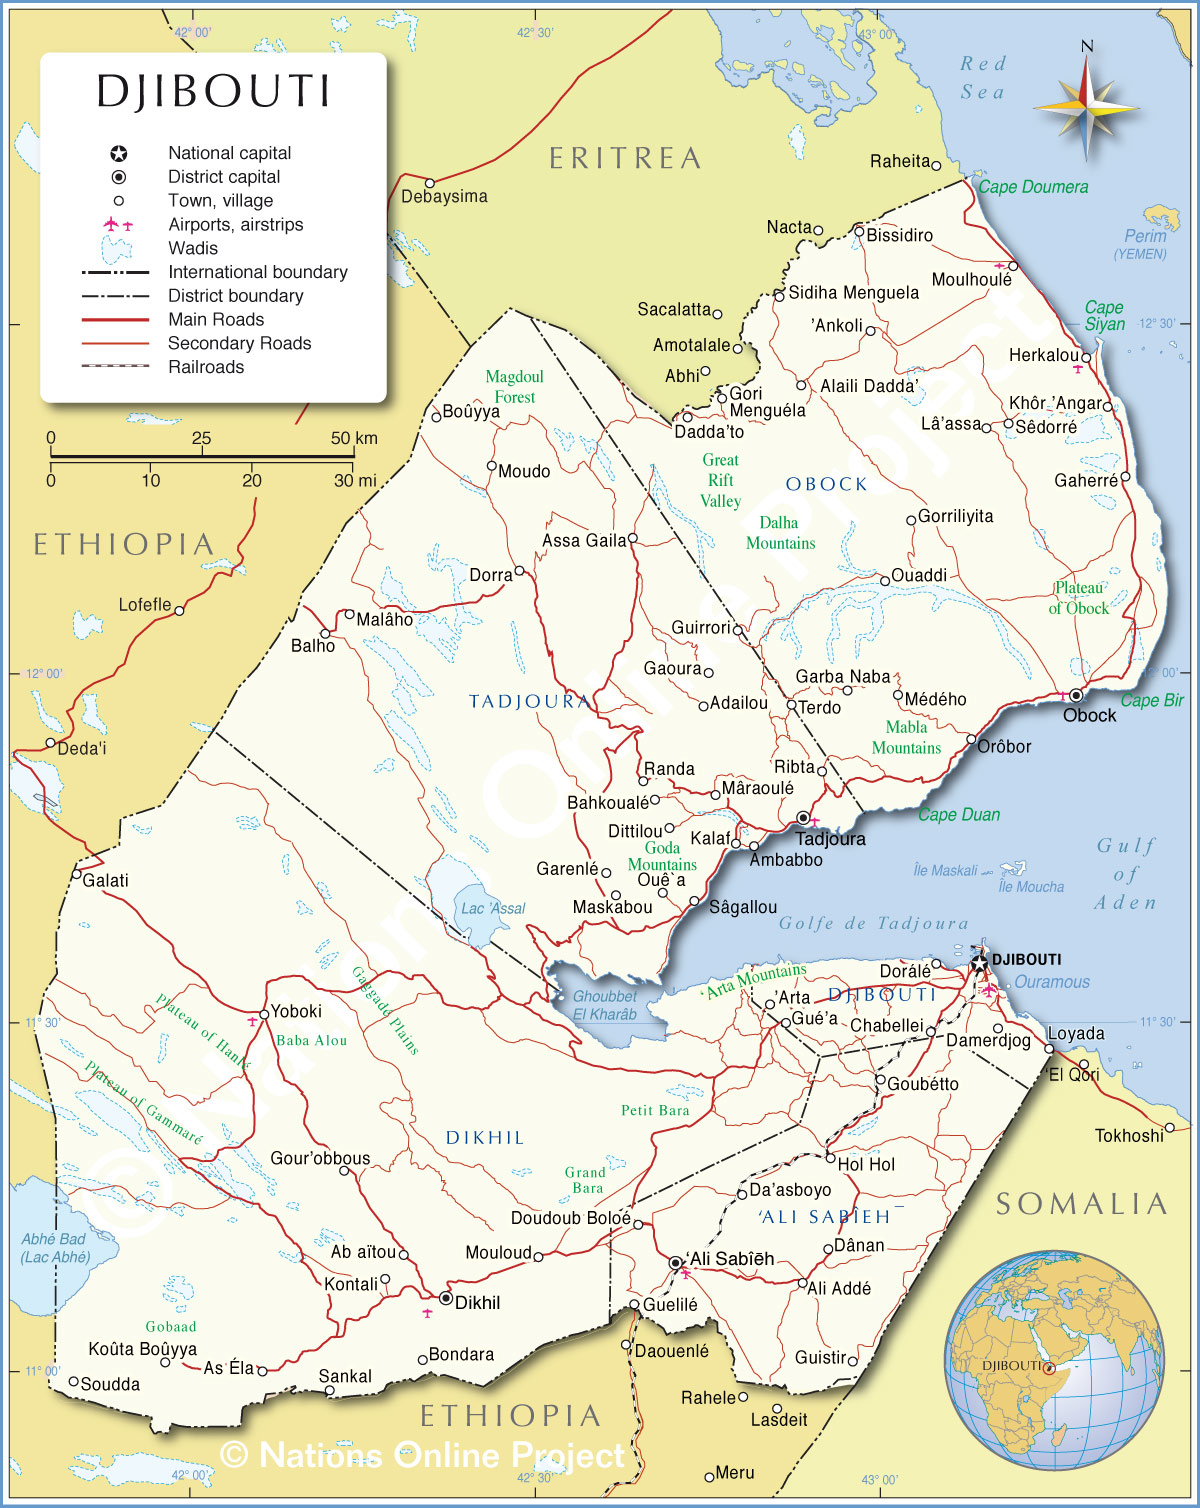 map of djibouti africa Political Map Of Djibouti 1200 Pixel Nations Online Project map of djibouti africa